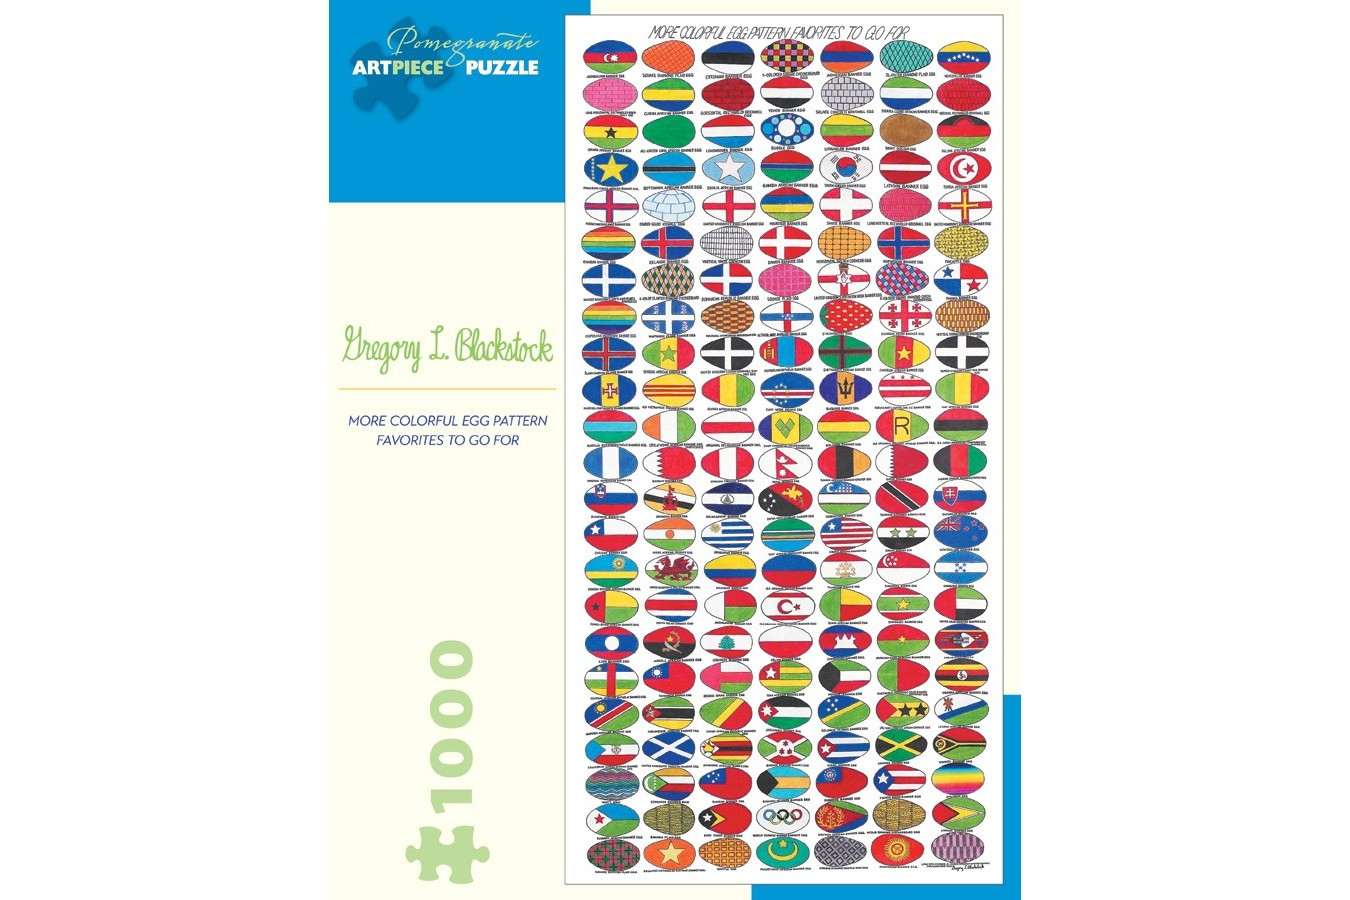 Puzzle Pomegranate - Gregory L. Blackstock: More Colorful Egg Pattern Favorites to Go For, 2005, 1.000 piese (AA888)